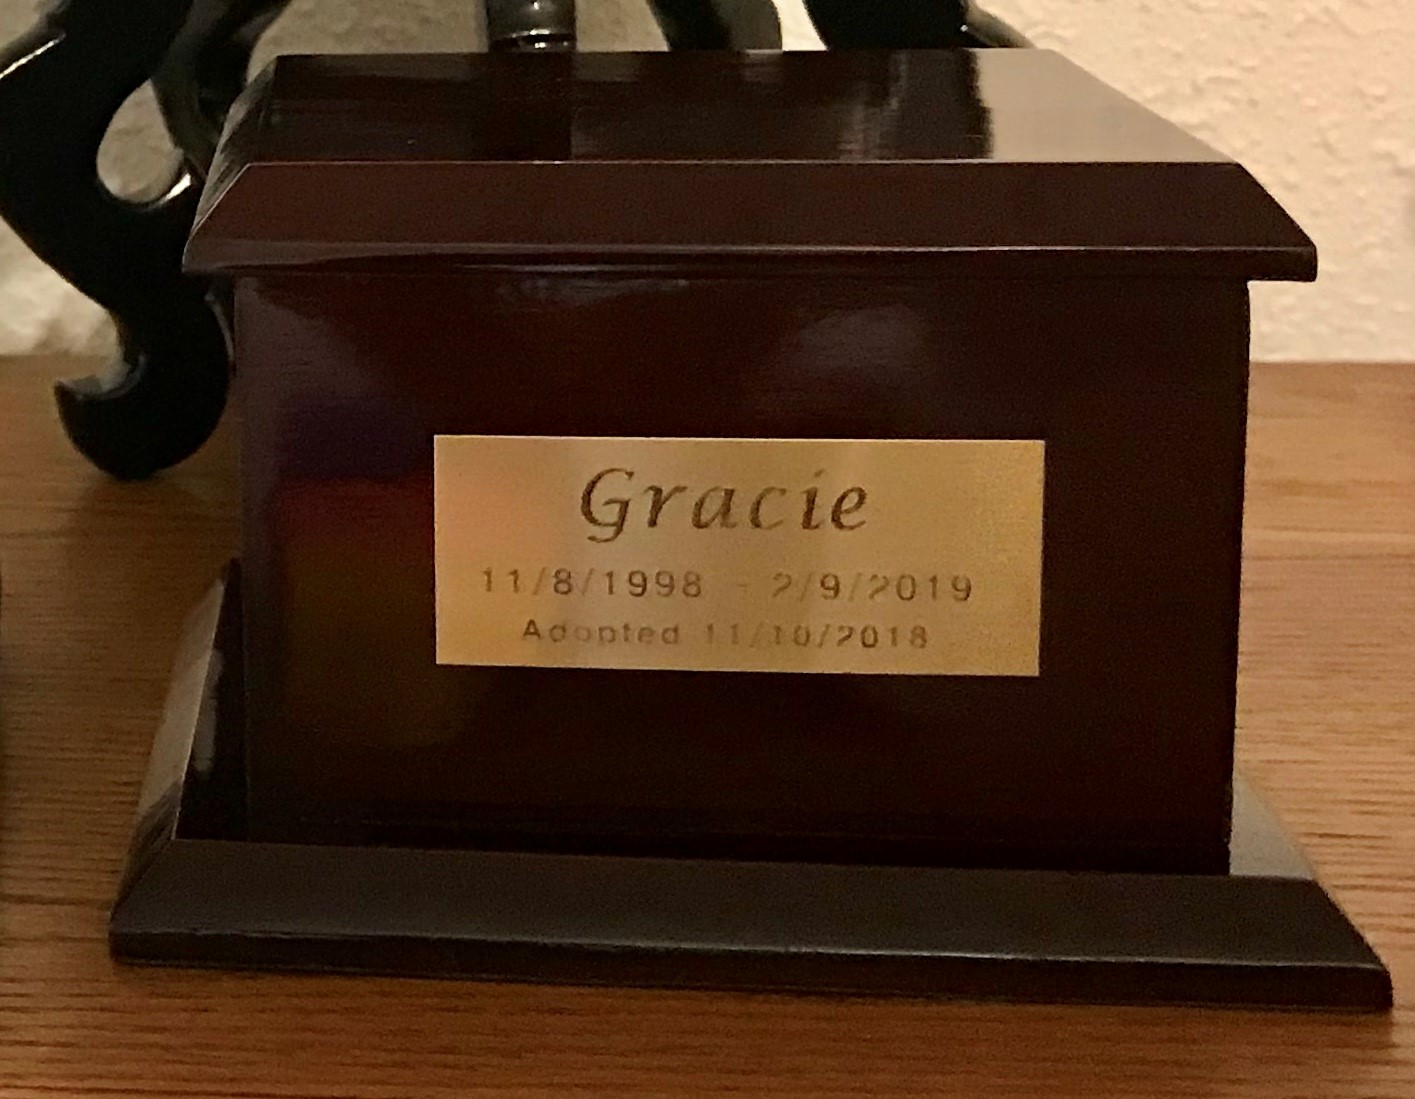 Gracie's ashes